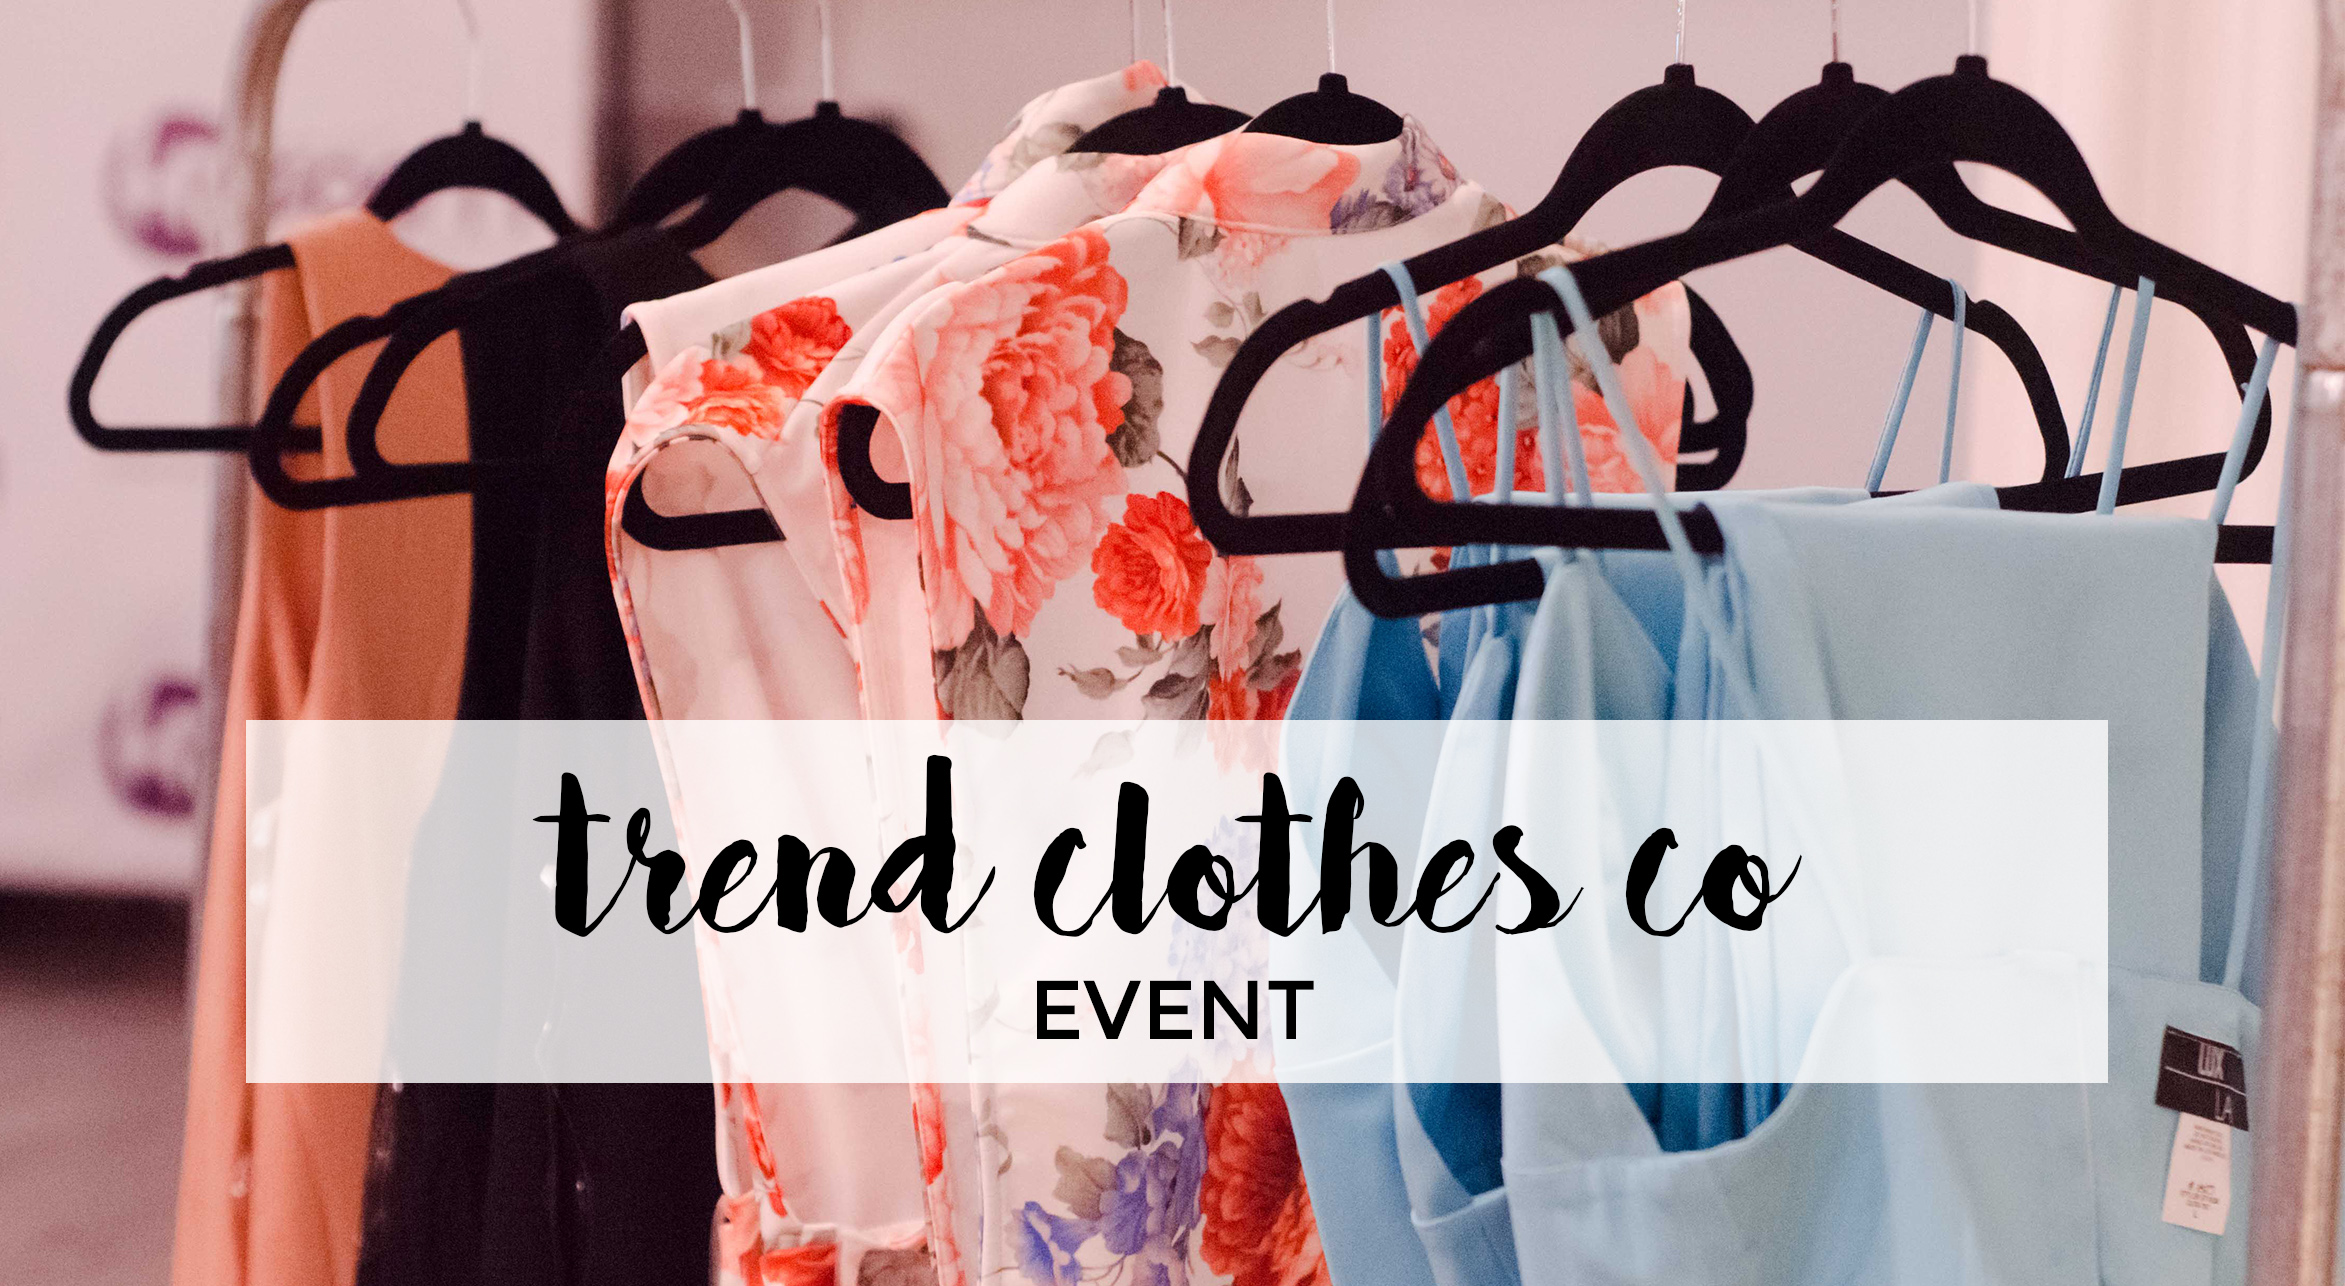 Trend Clothes Co: Tampa's Newest Fashion Boutique